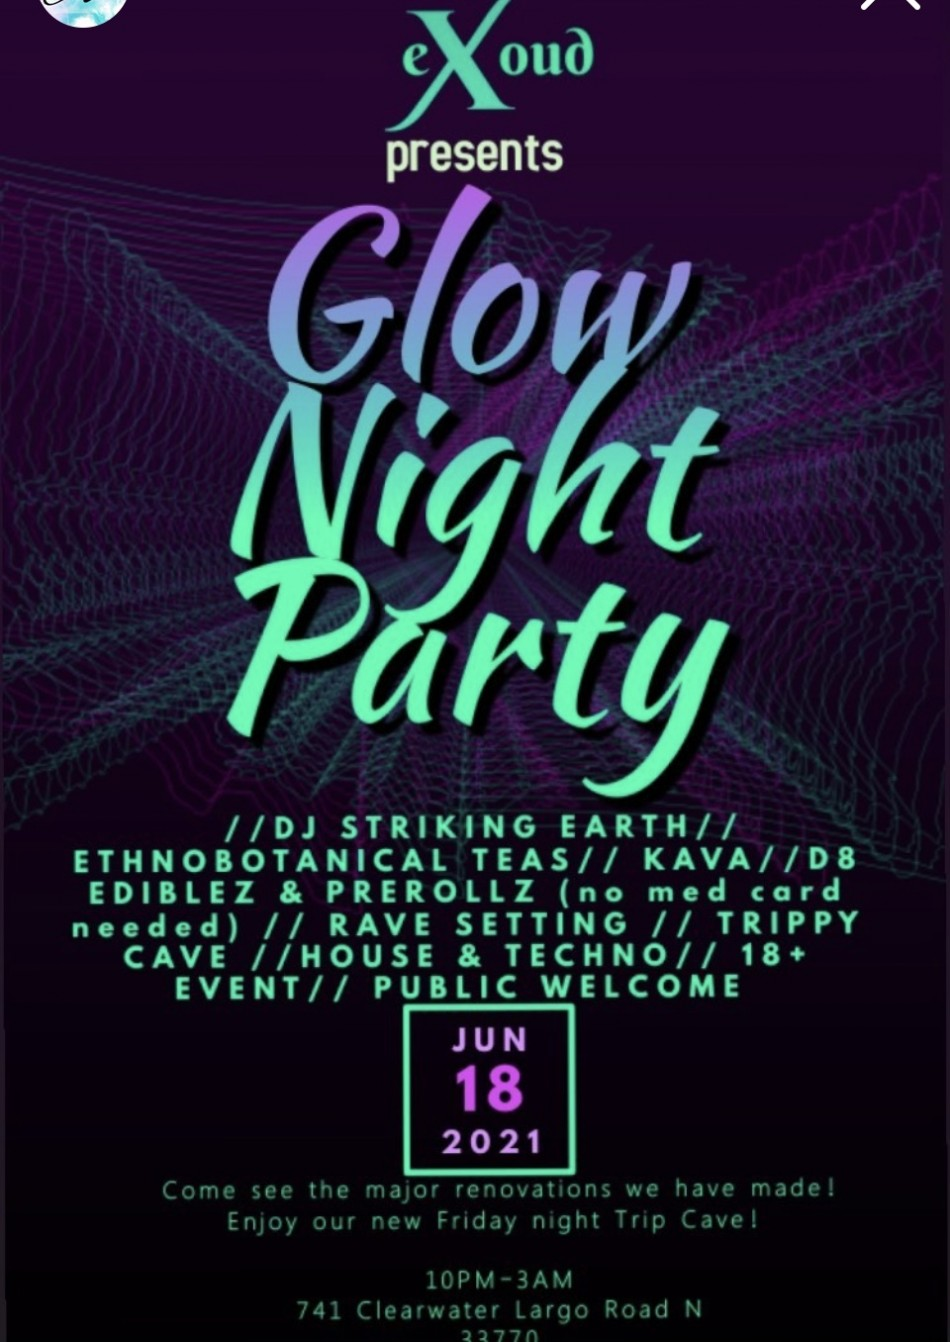 Exoud Botanicals Glow Party with DJ Striking Earth